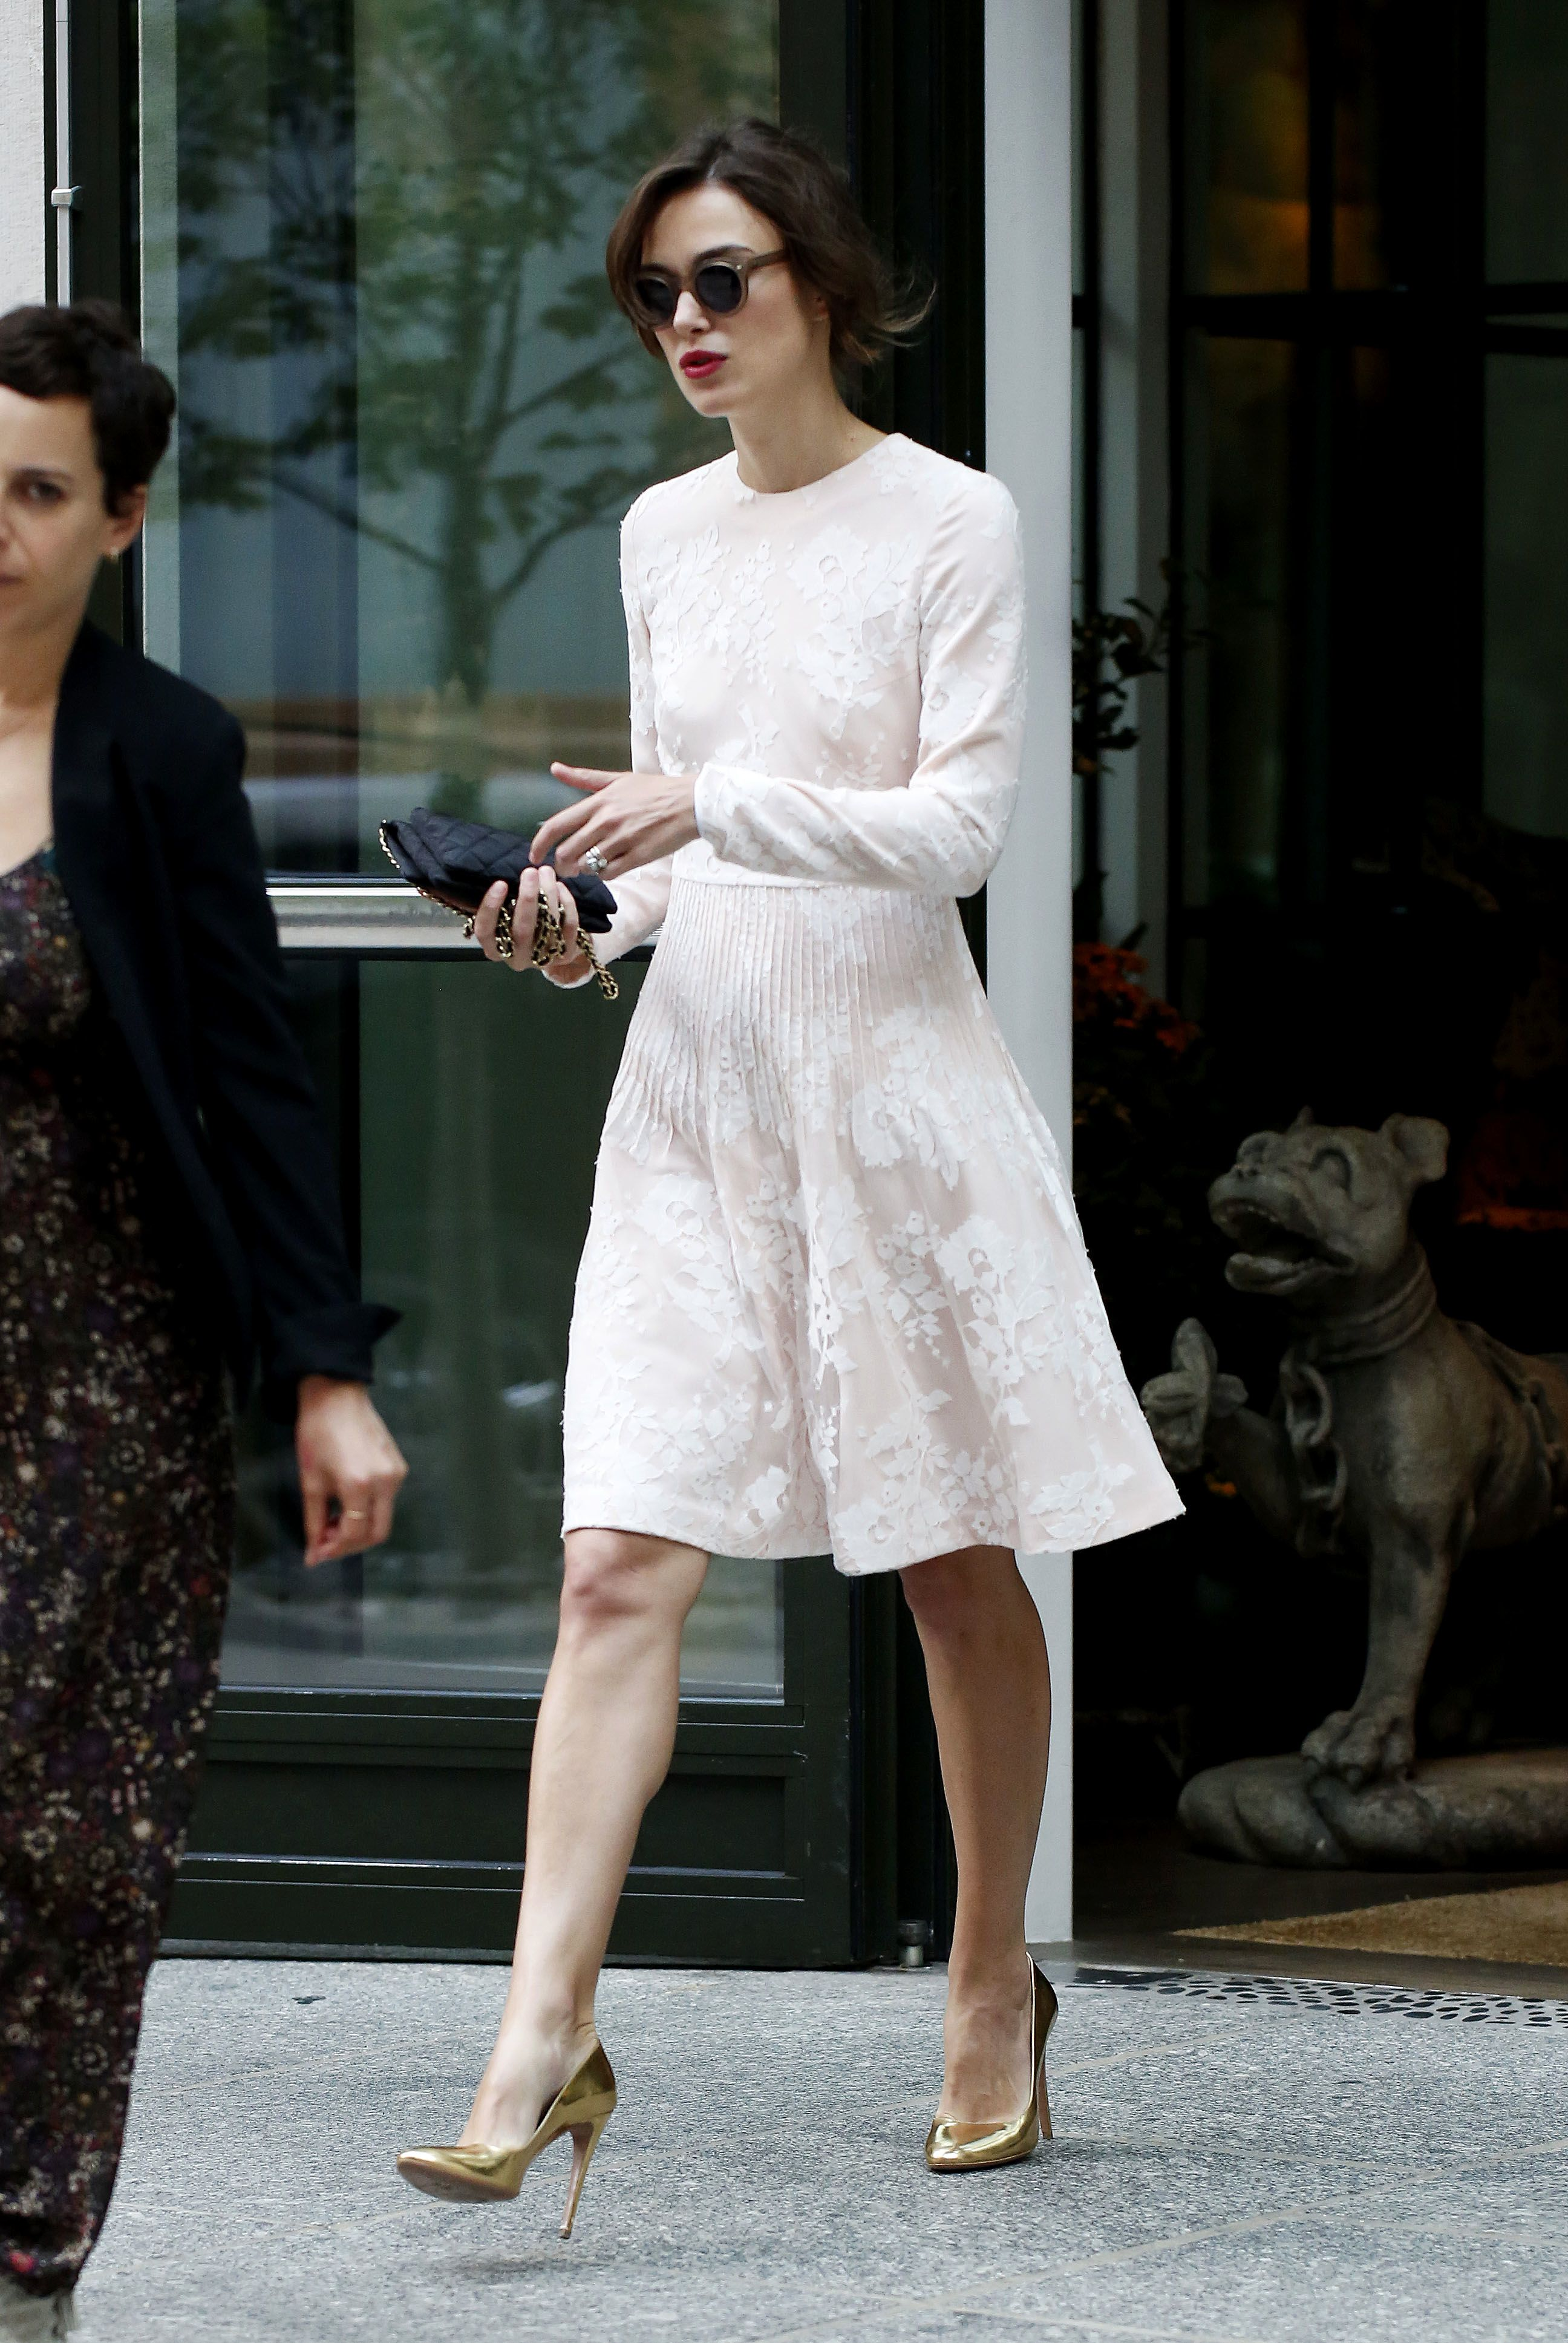 Keira Knightley, we are all over your ladylike looks this week!  http://www.asos.com/women/fashion-news/2014/07/3-thurs/ladylike-keira/?CTARef=ED|WW|dest|list||0703Keir#p=1s=0